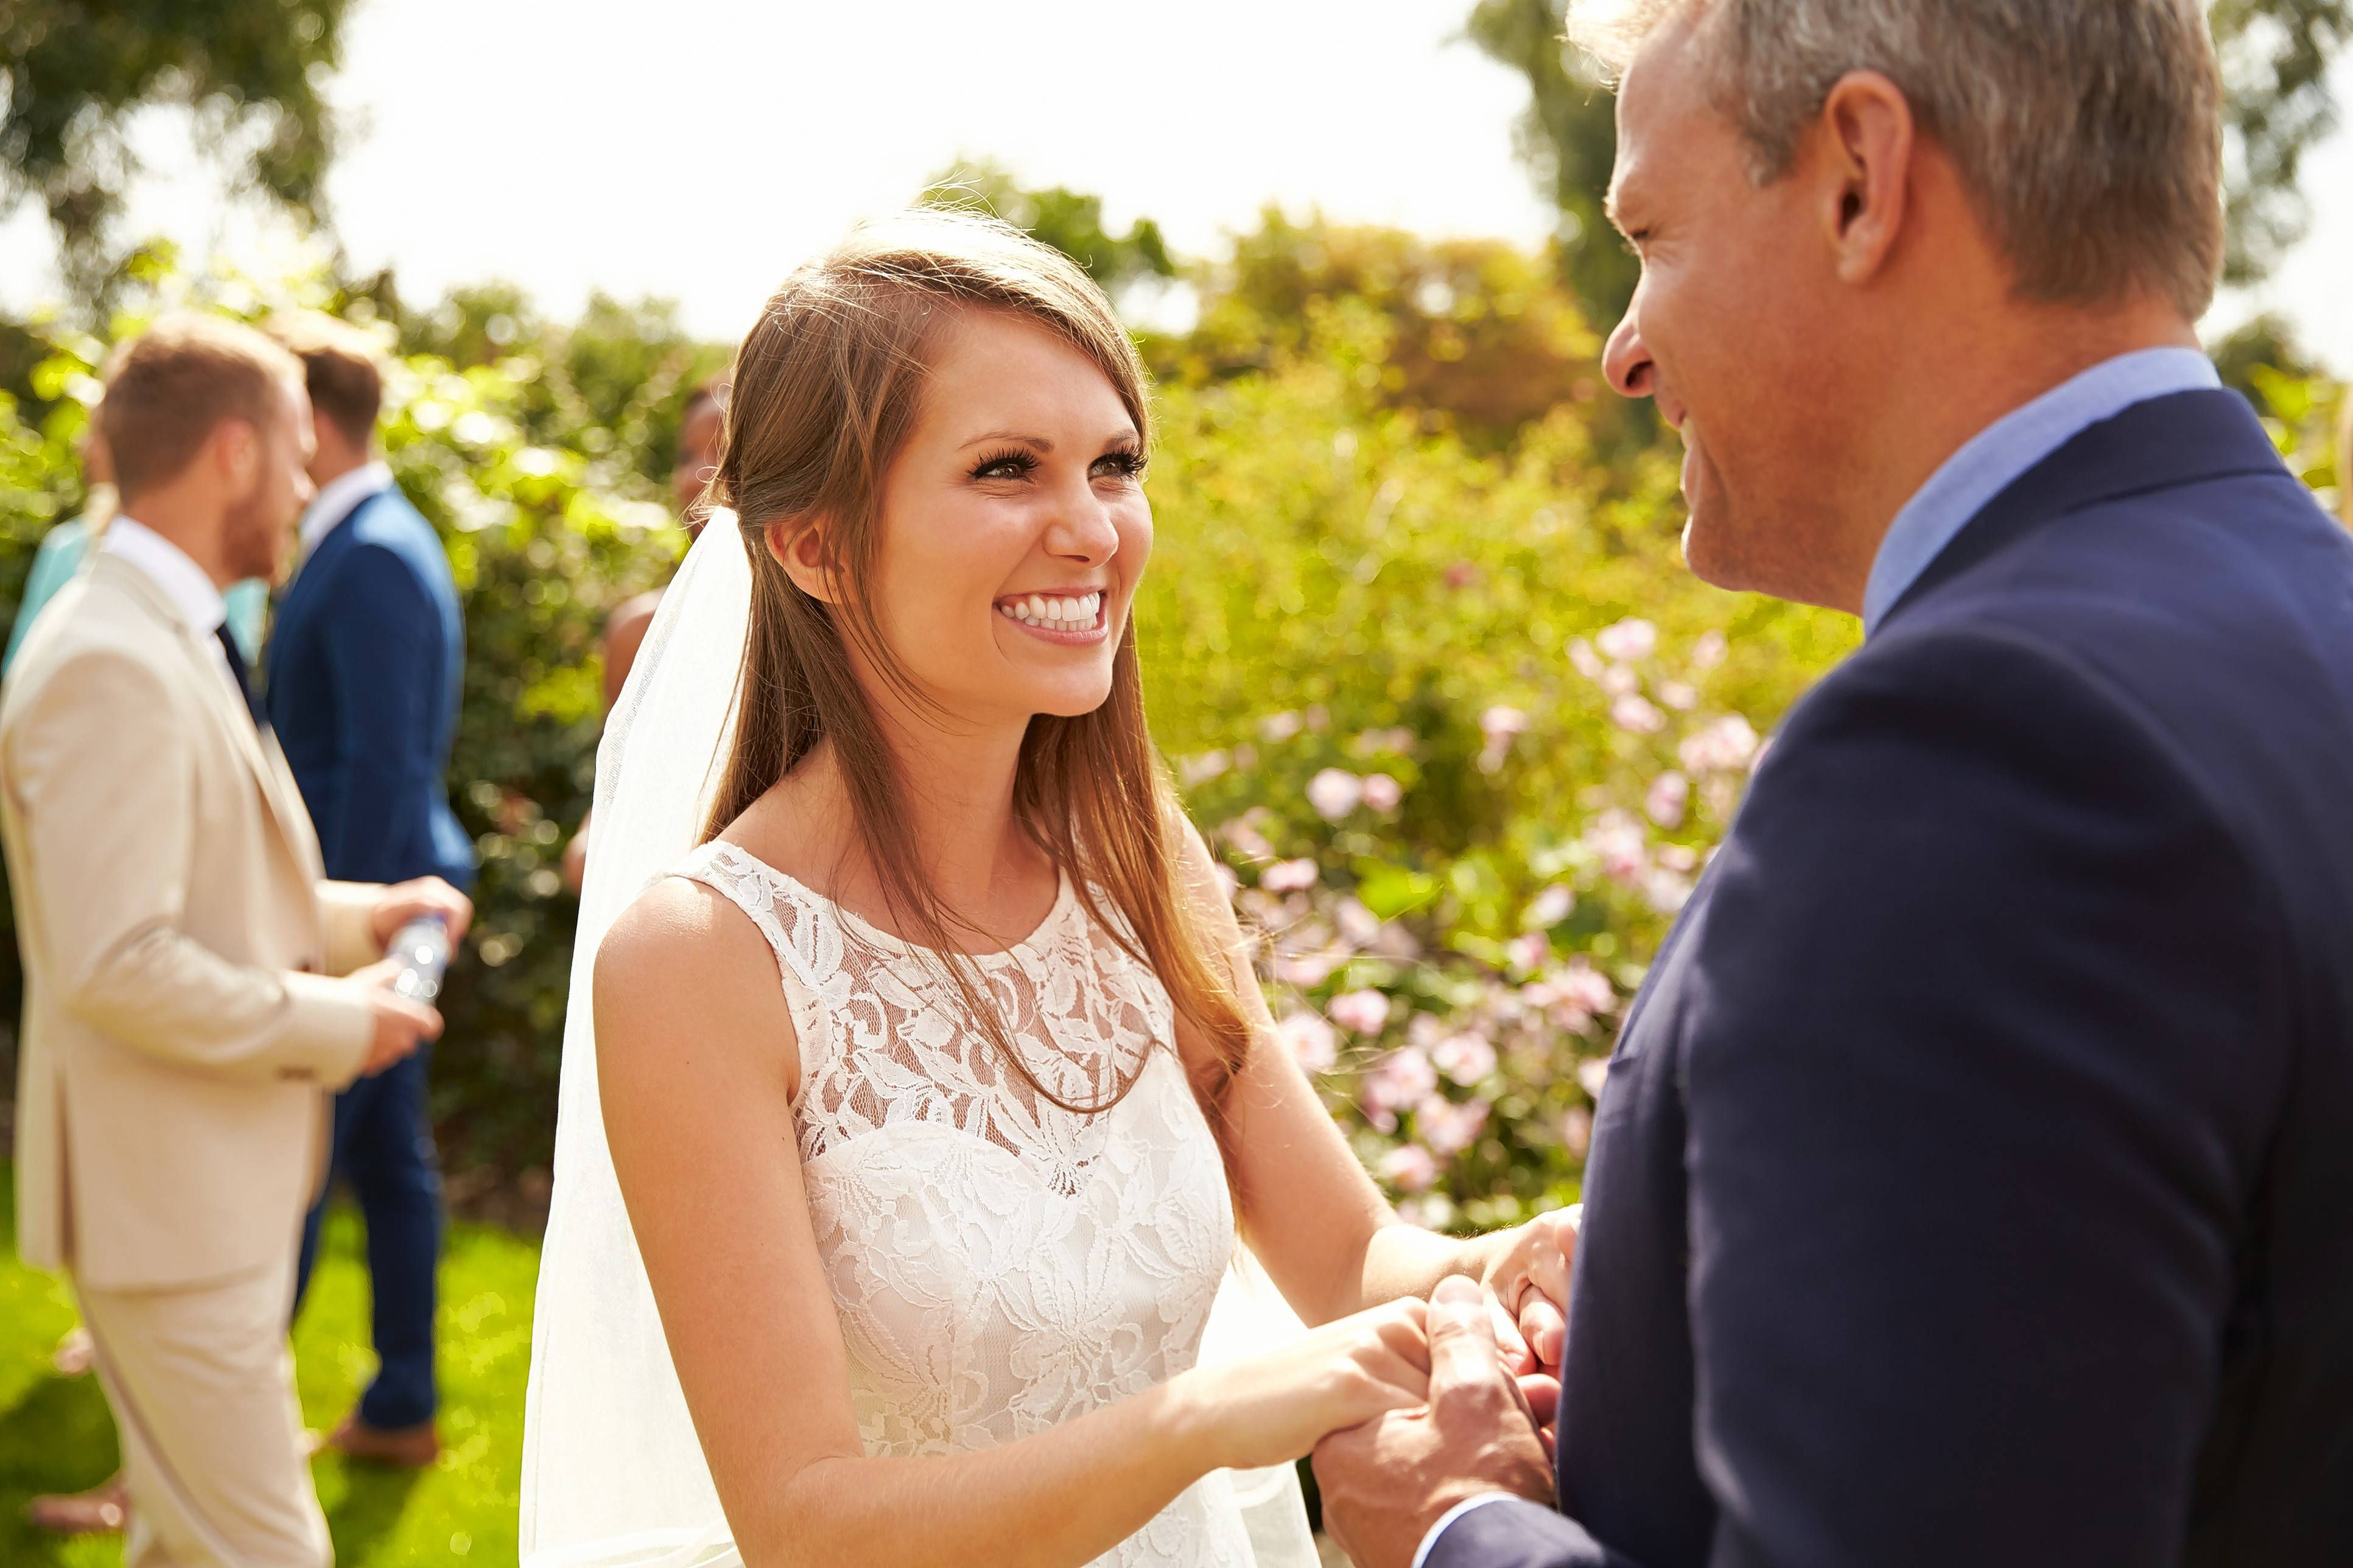 Parents of daughters, beware: The age-old tradition of the brides' parents funding the wedding is still very much alive.